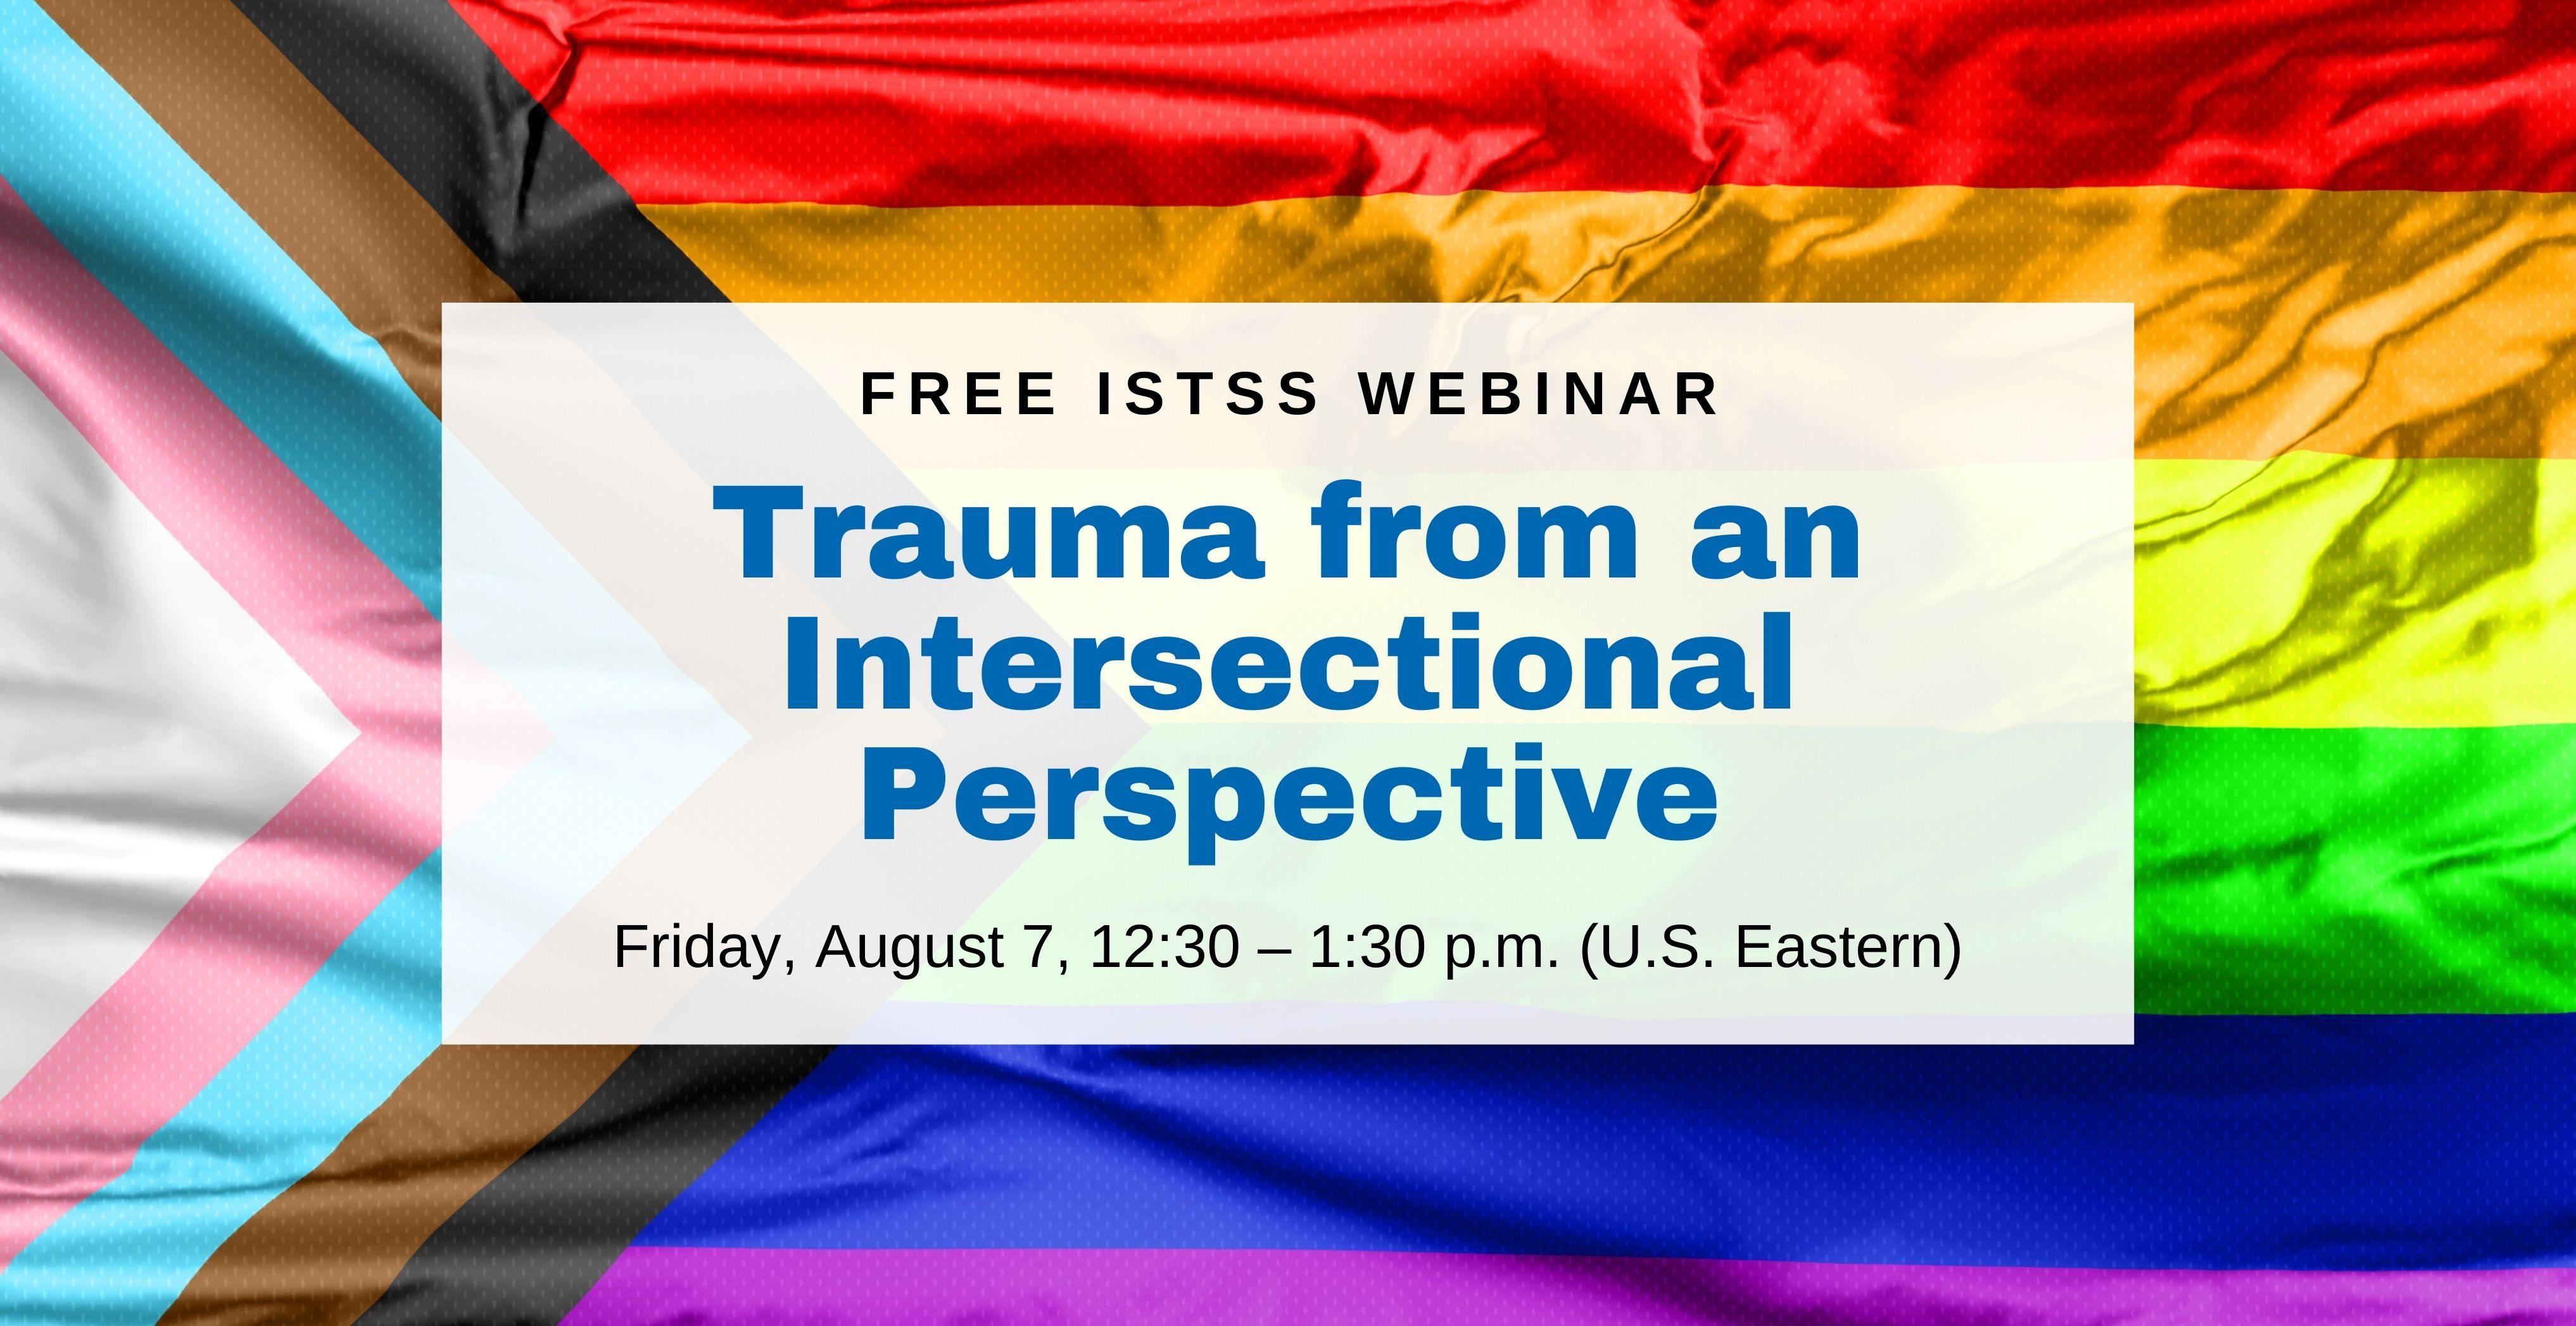 ISTSS Webinar: Trauma from an Intersectional Perspective